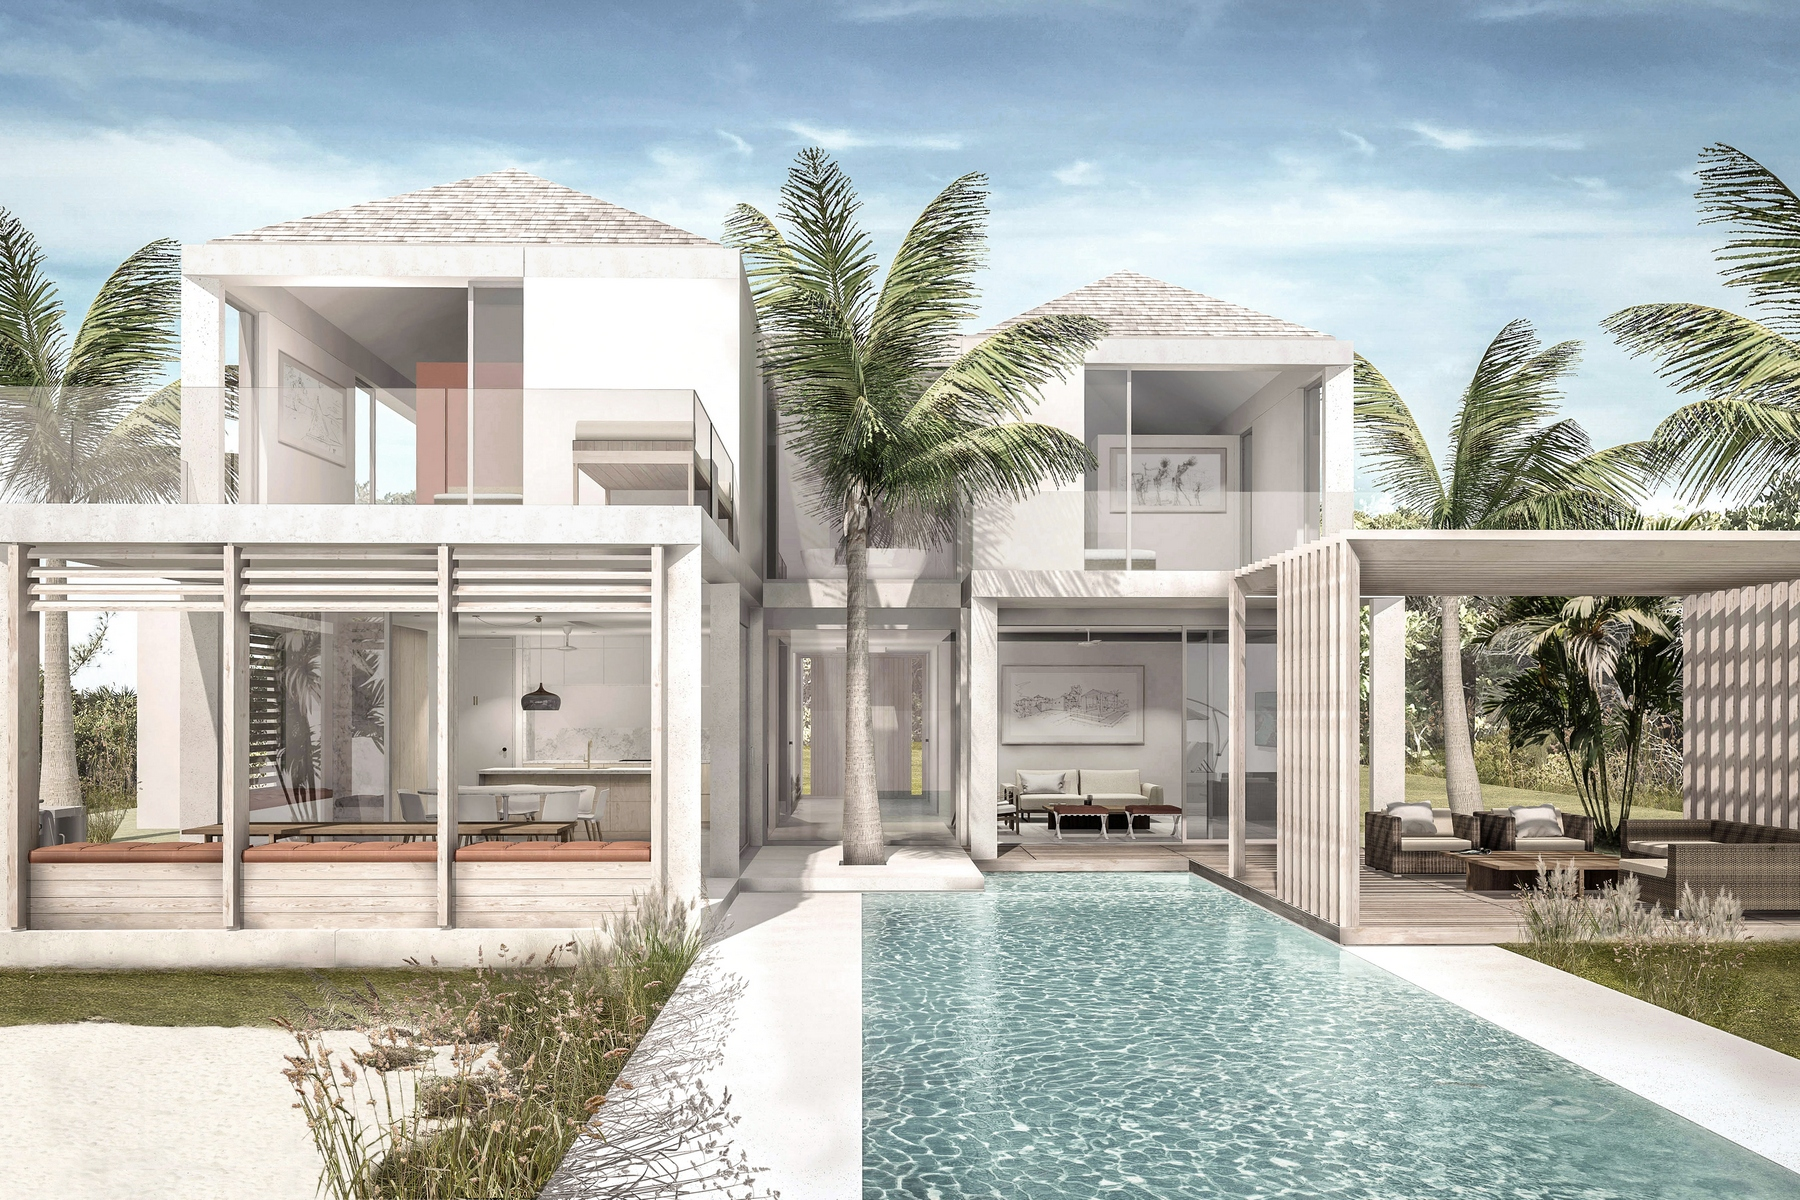 Single Family Home for Sale at Parallel Canalfront Lot 7 Blue Cay Estate, Leeward, Providenciales Turks And Caicos Islands